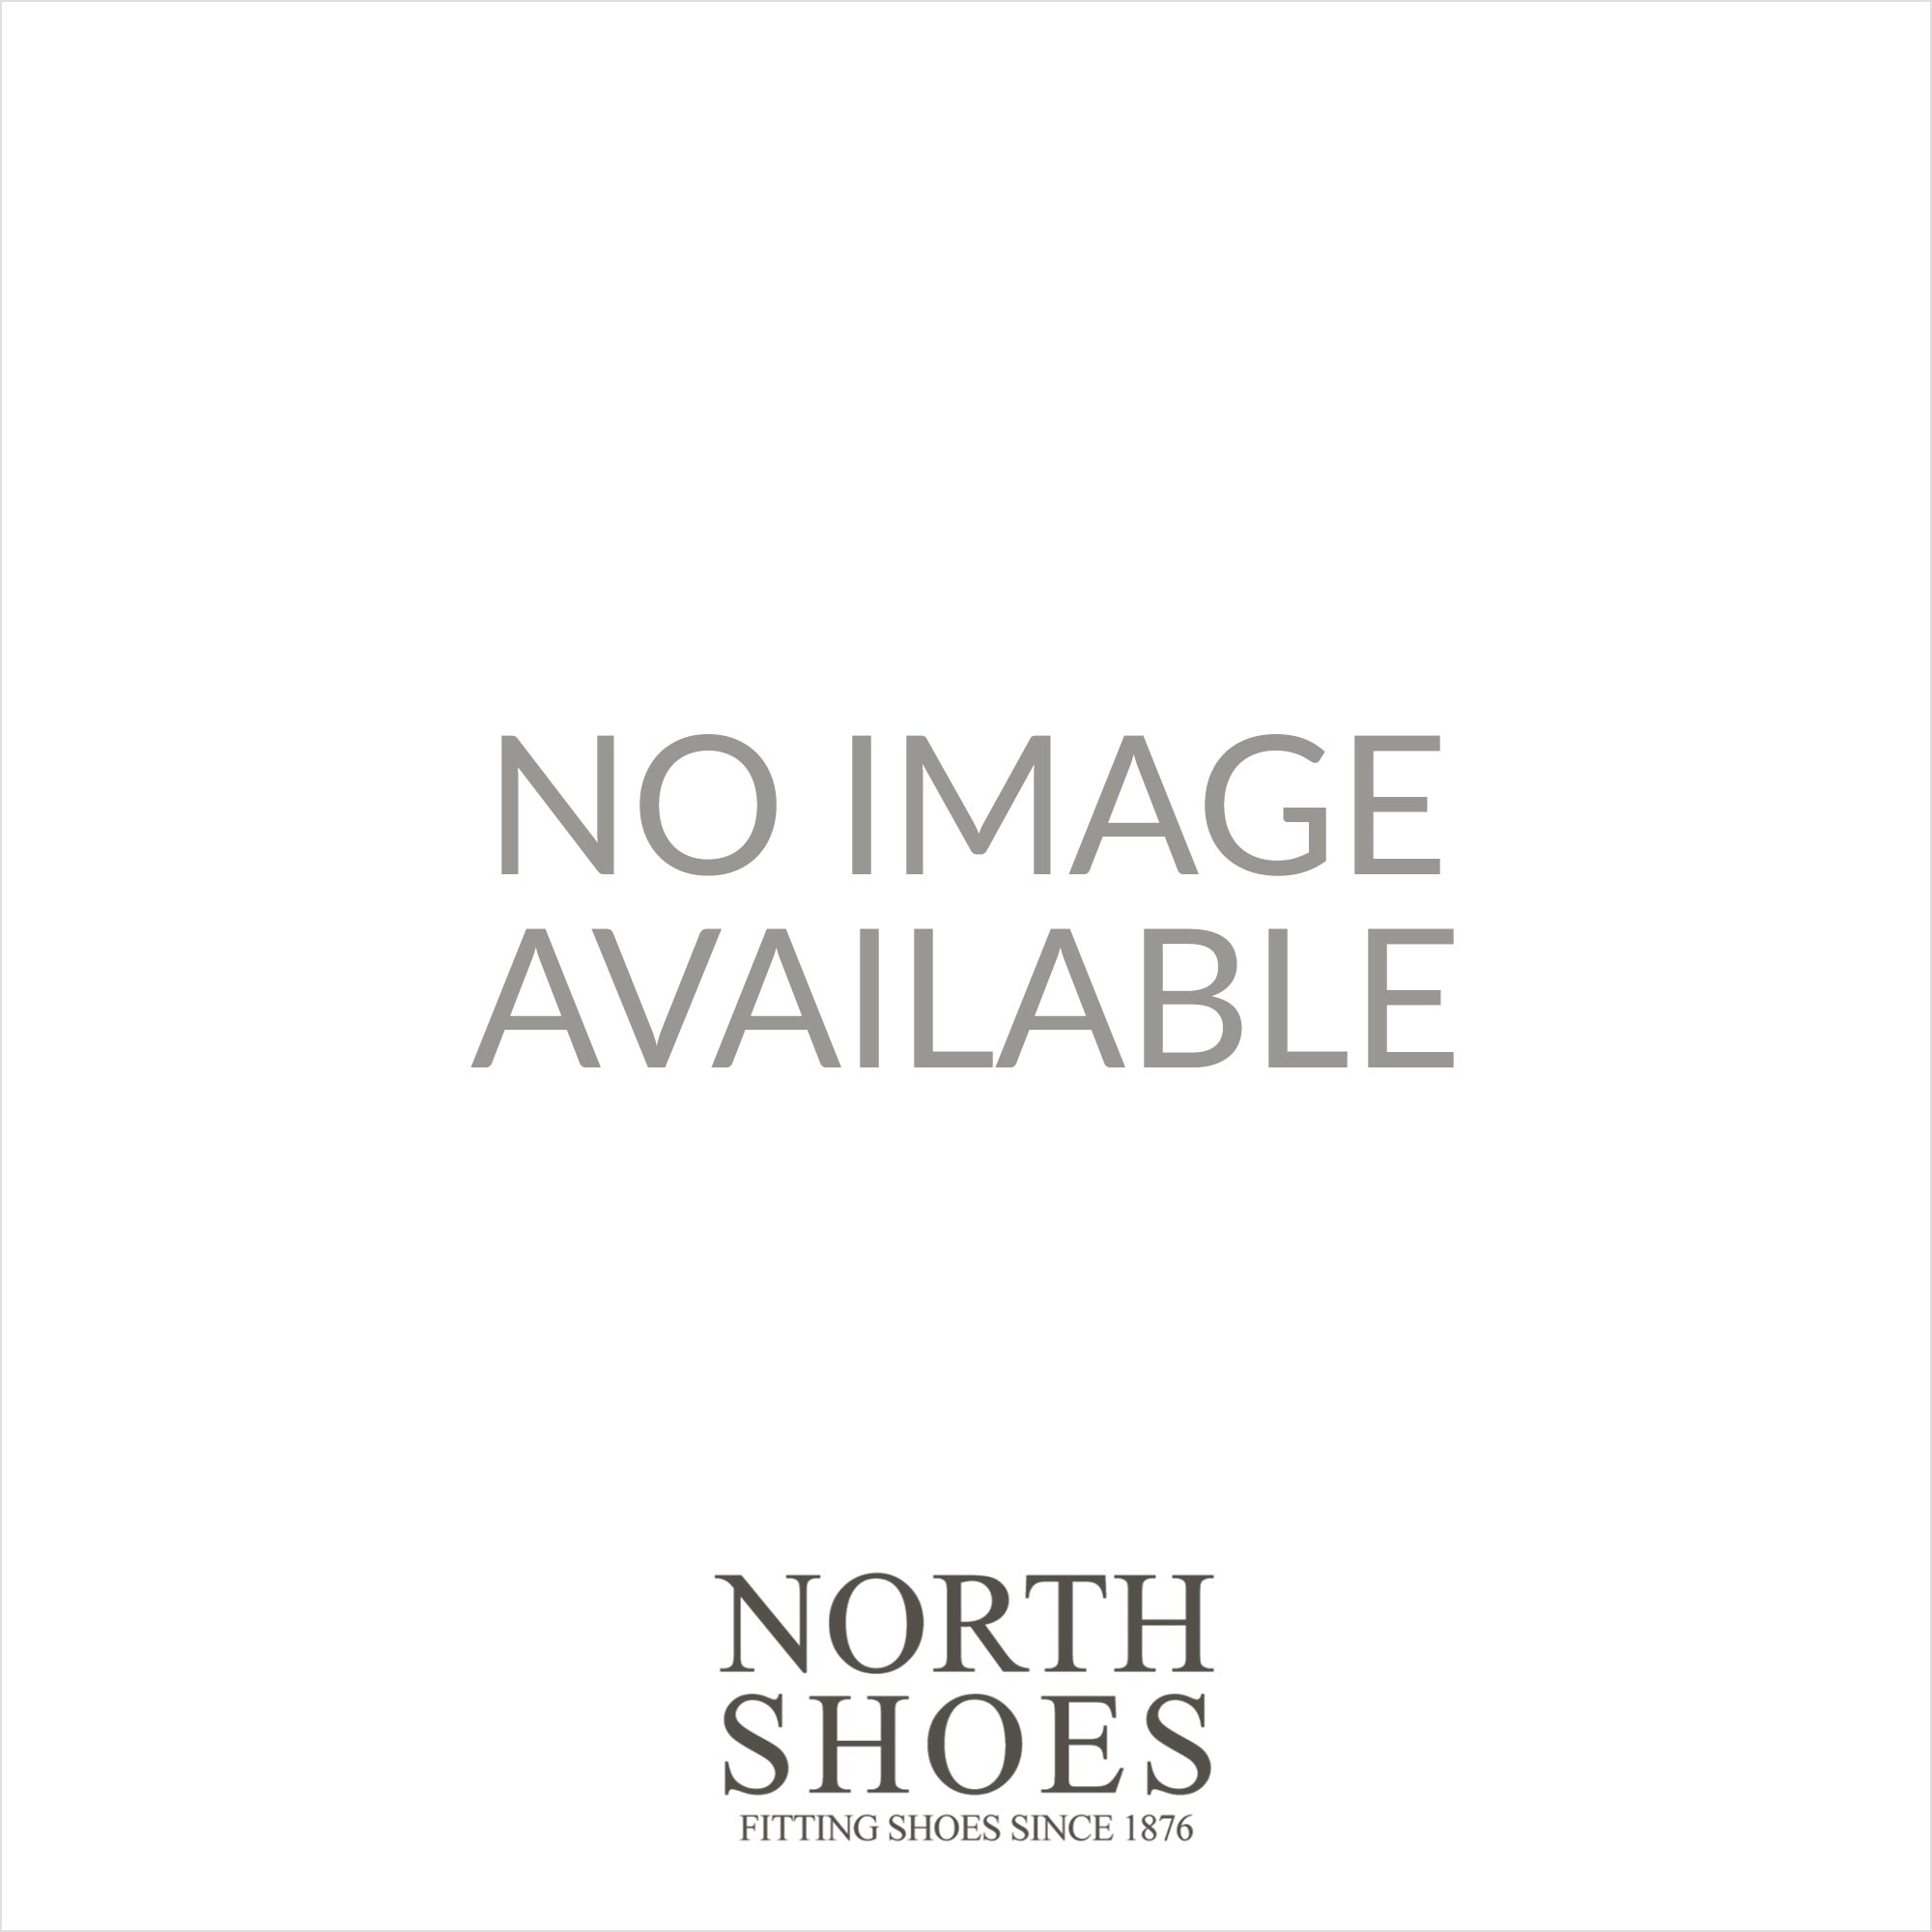 bf41793aef88 Clarks Temira Compass Black Leather Womens Strappy Wedge Heel Sandal -  Clarks from North Shoes UK